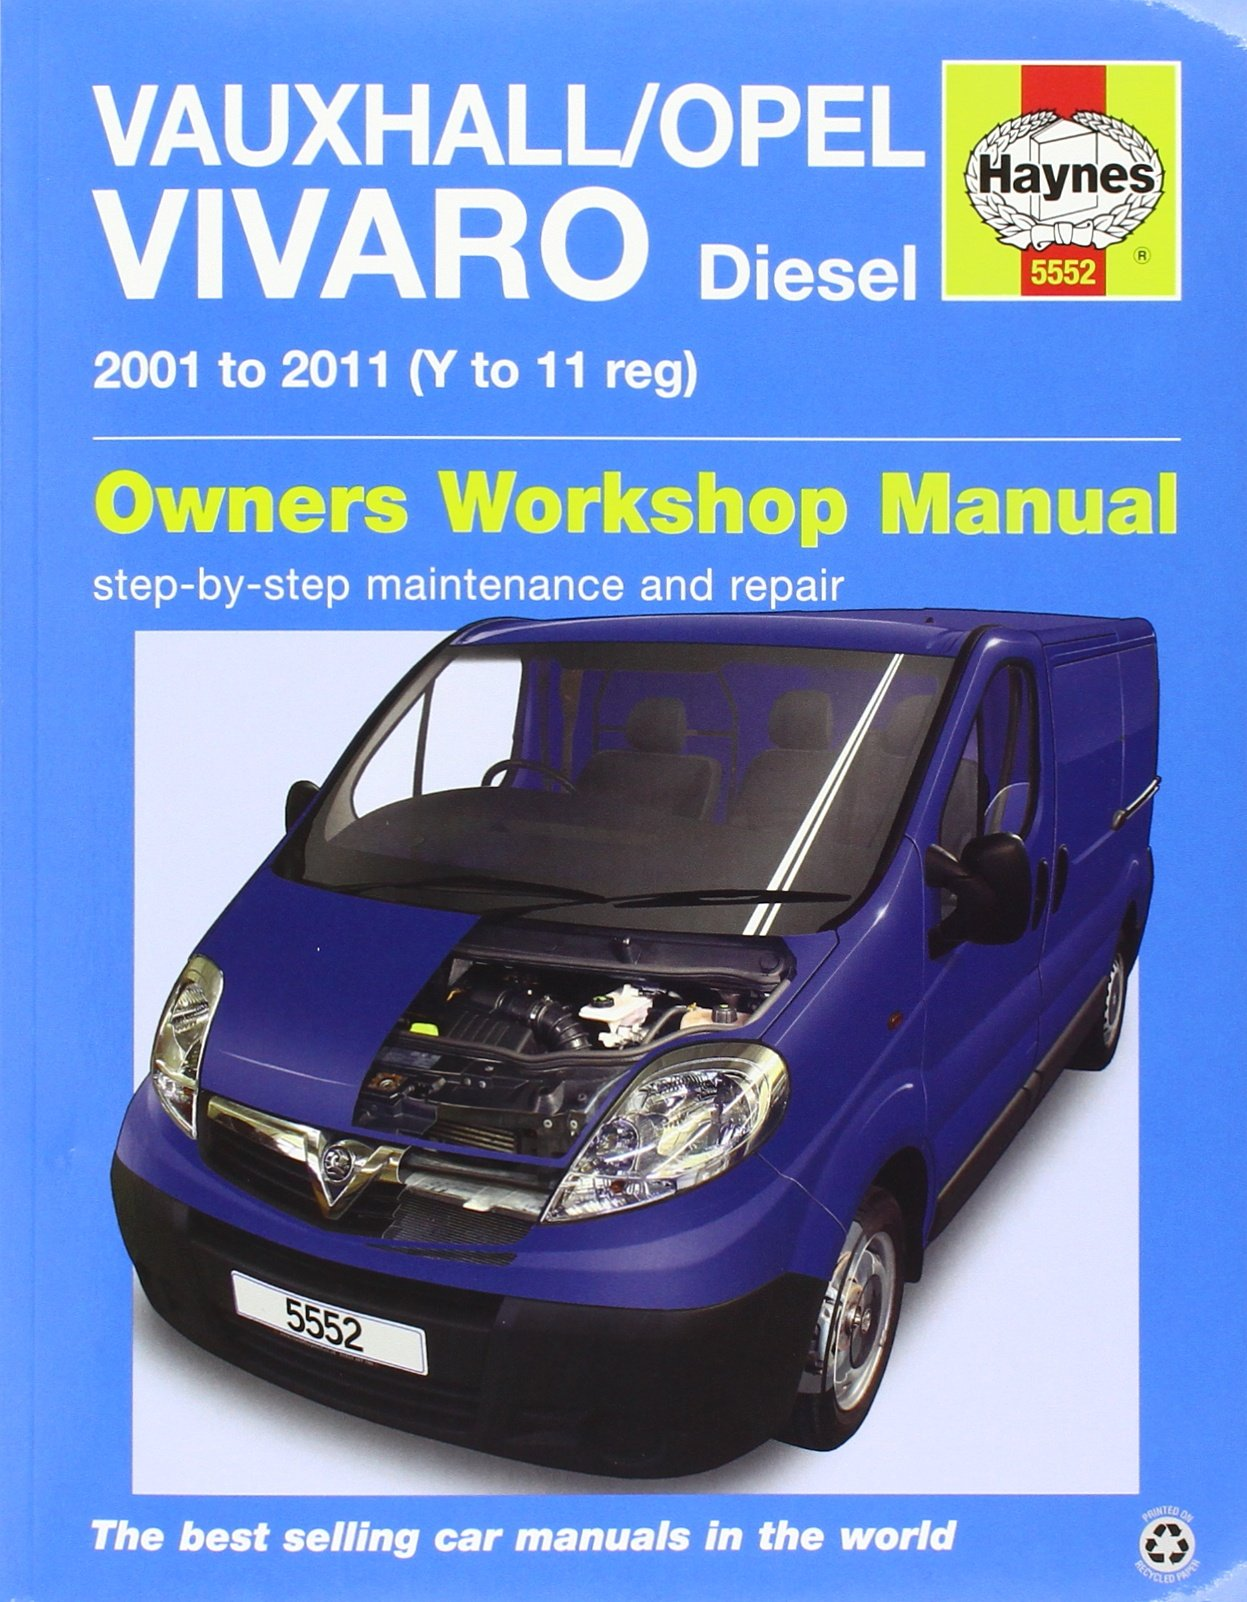 Vauxhall/Opel Vivaro Diesel 01 - 11 Haynes Repair Manual: Amazon.es: Haynes Publishing: Libros en idiomas extranjeros